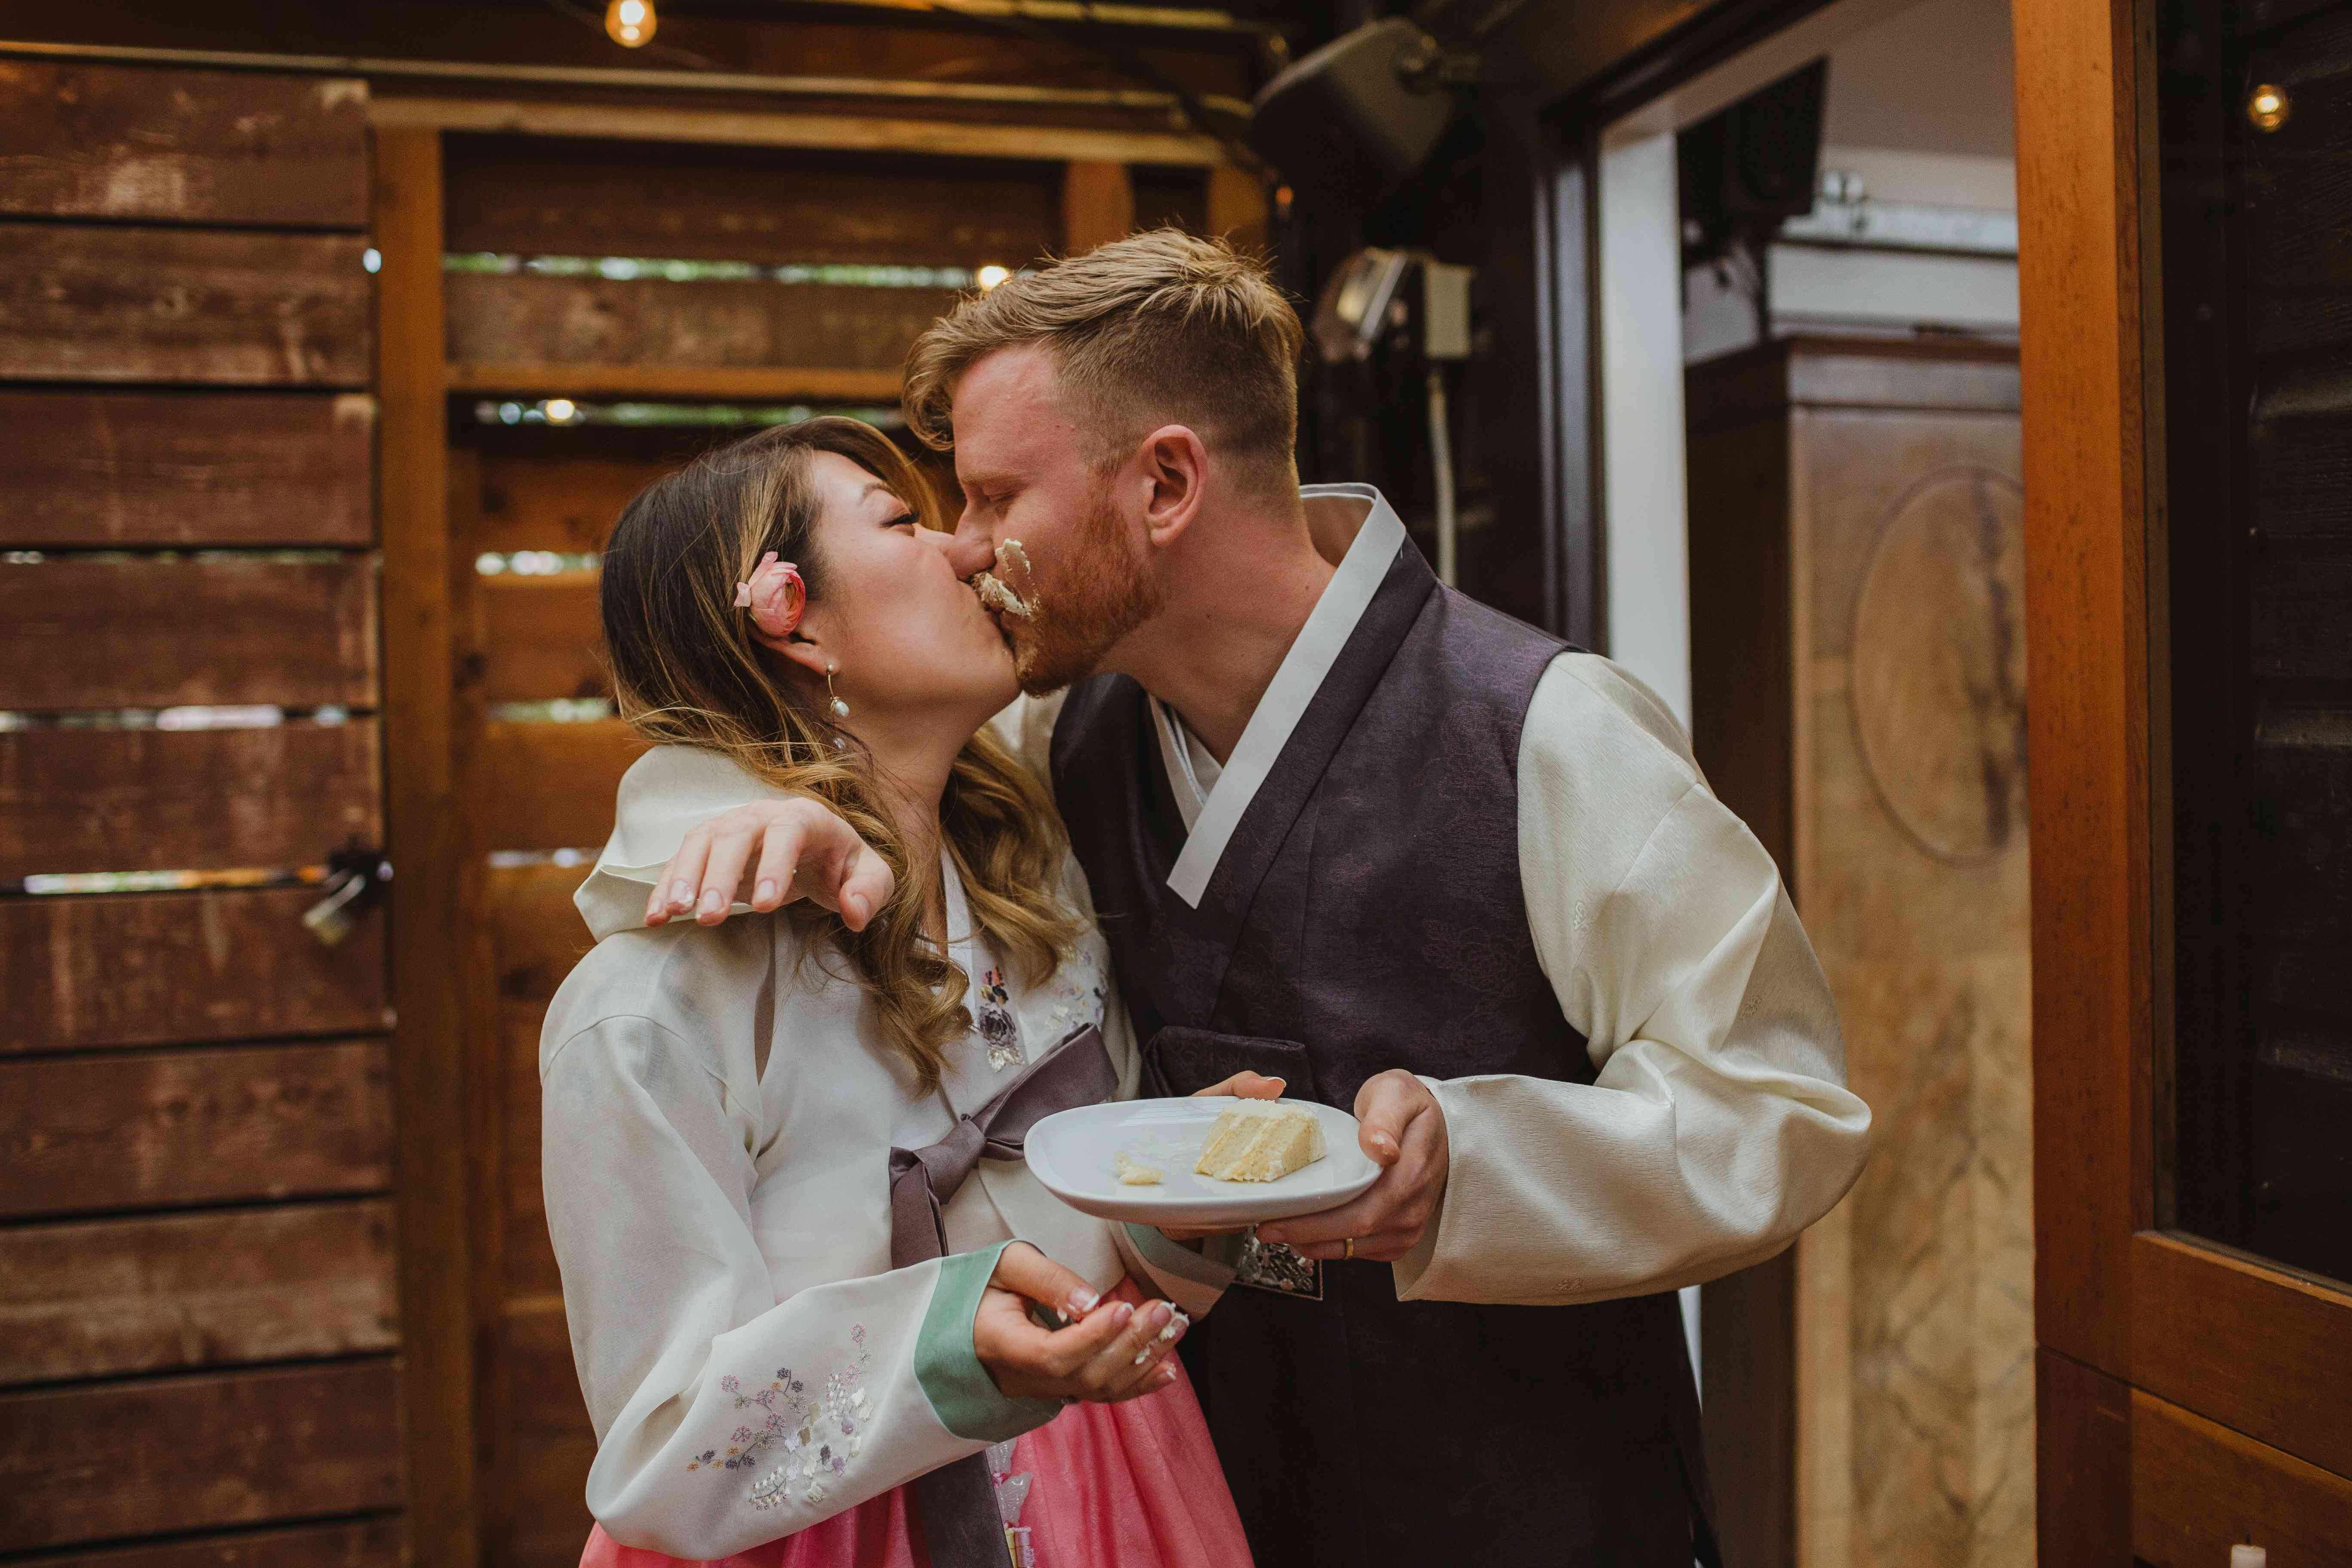 <p>Bride and groom kissing with cake</p><br><br>